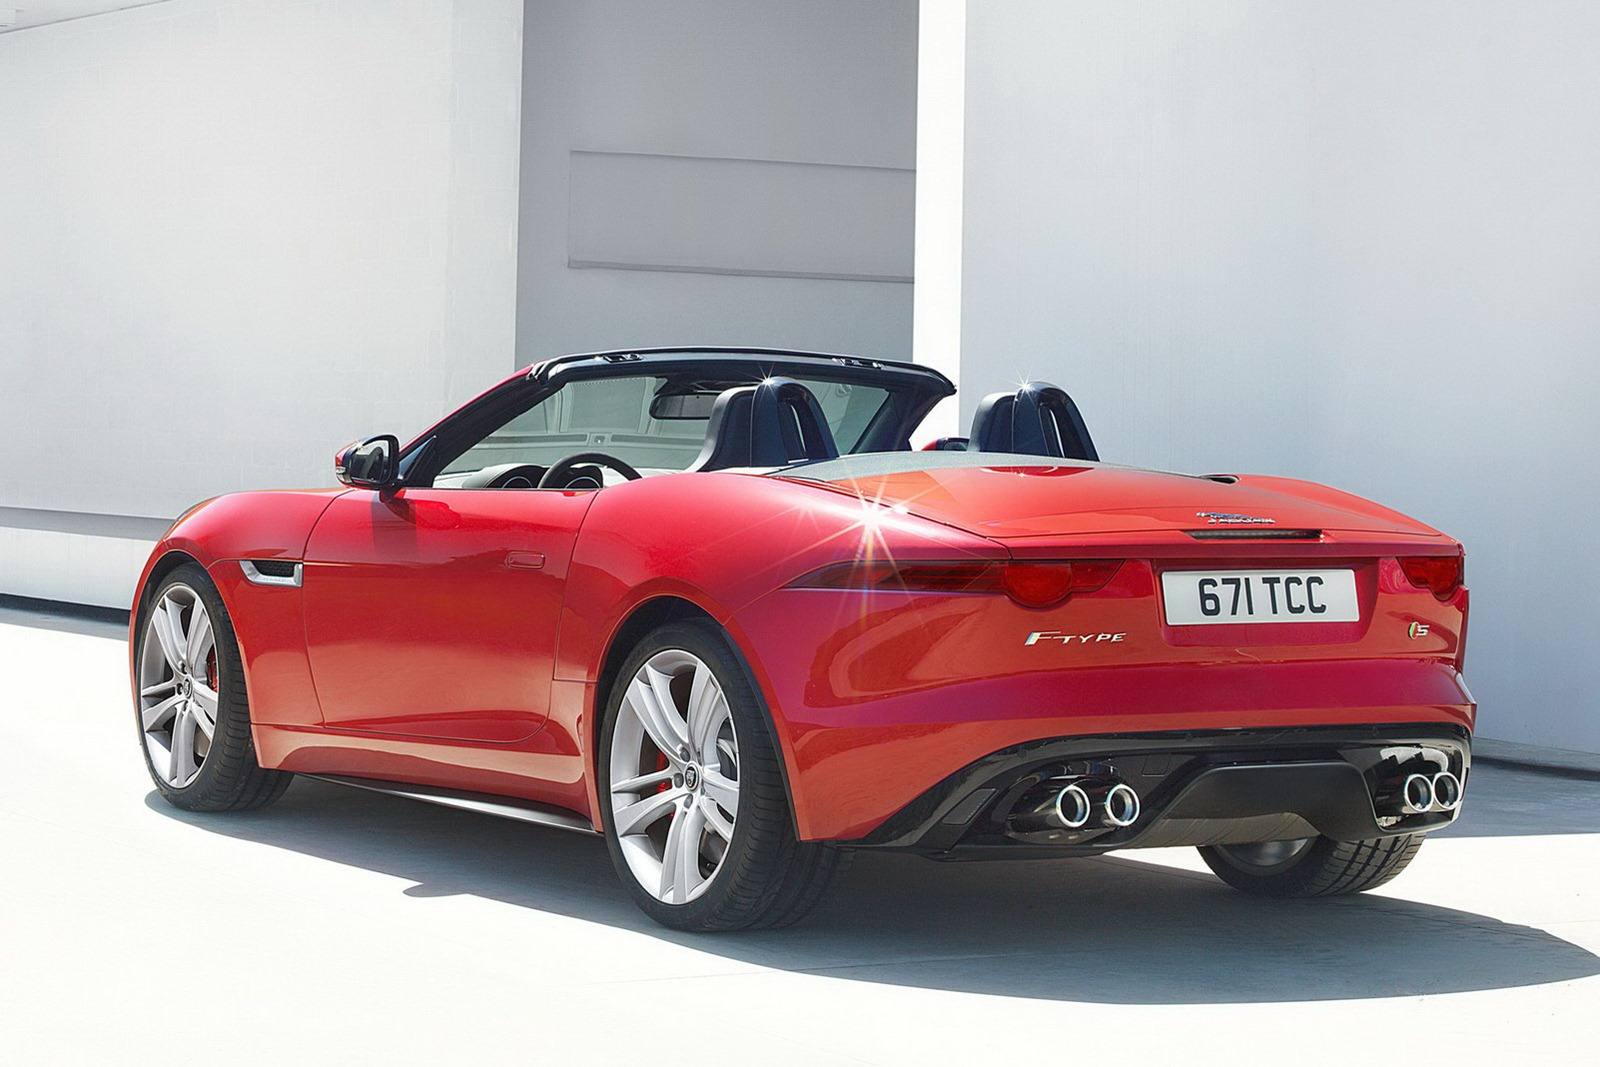 new 2013 jaguar f type roadster price starts at 69 000. Black Bedroom Furniture Sets. Home Design Ideas